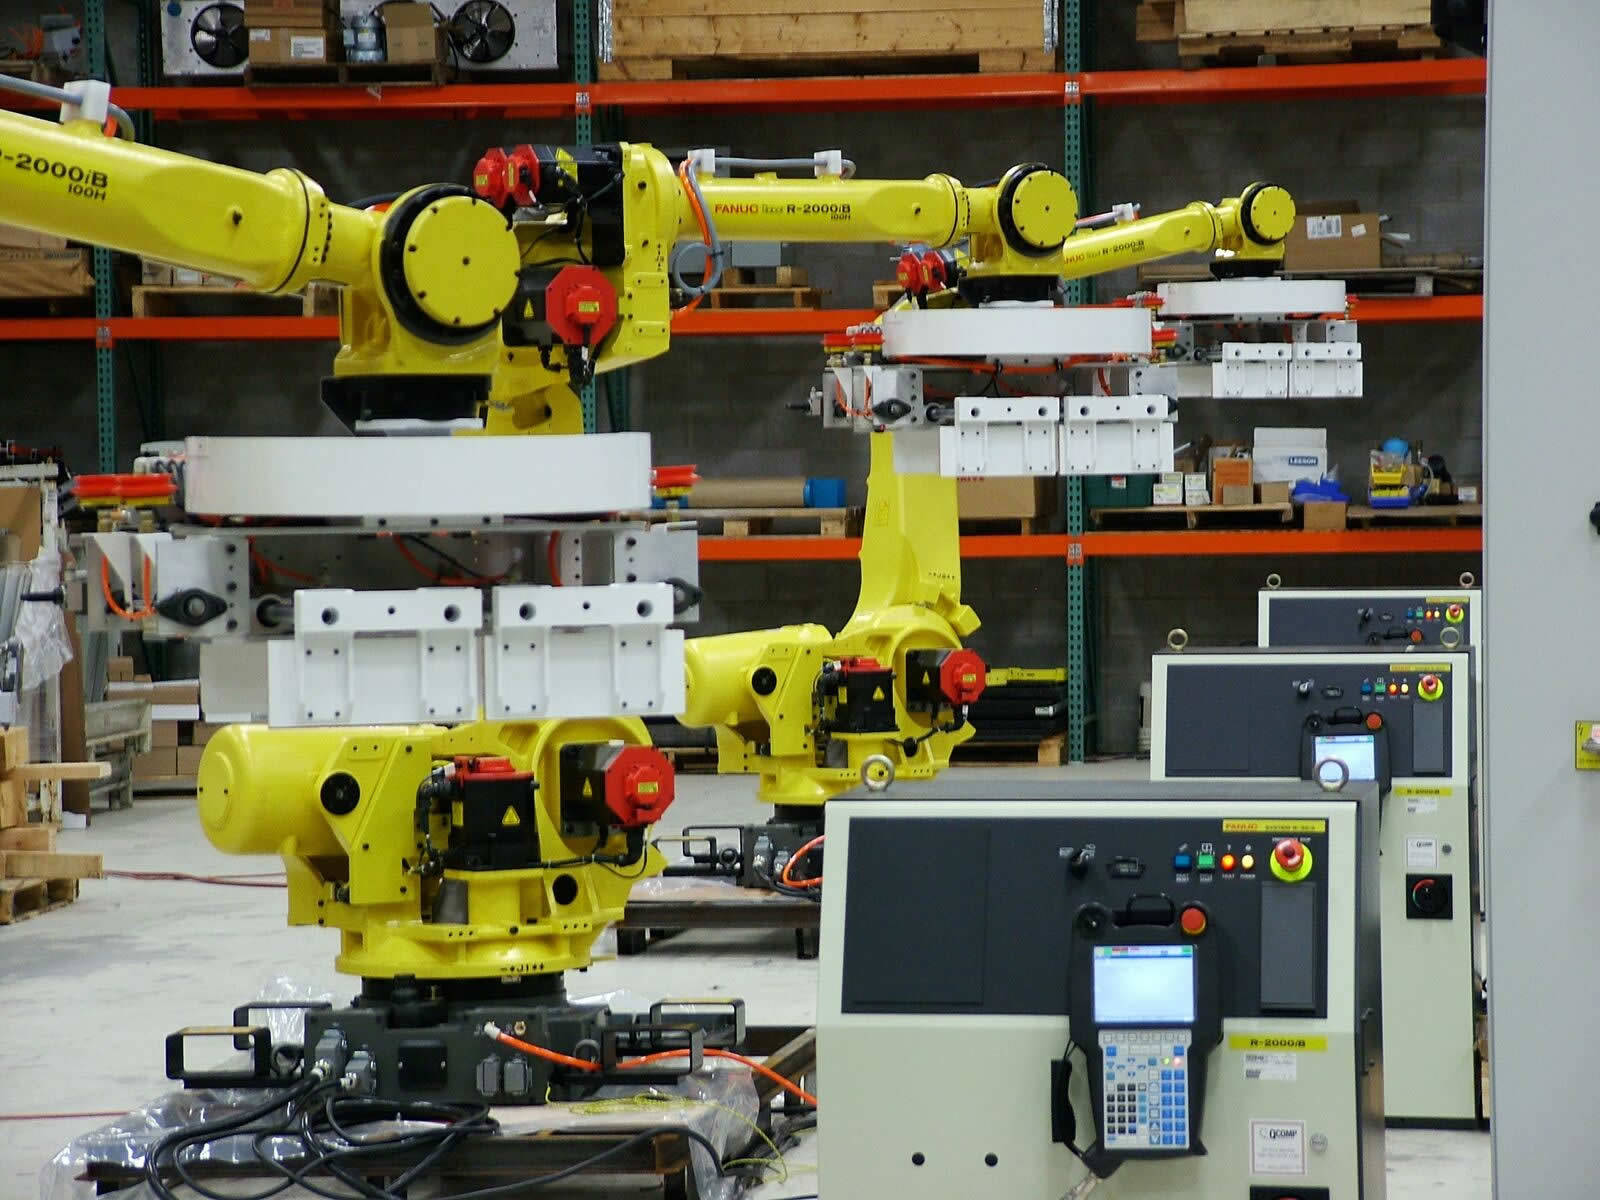 QComp large industrial robots photo 4